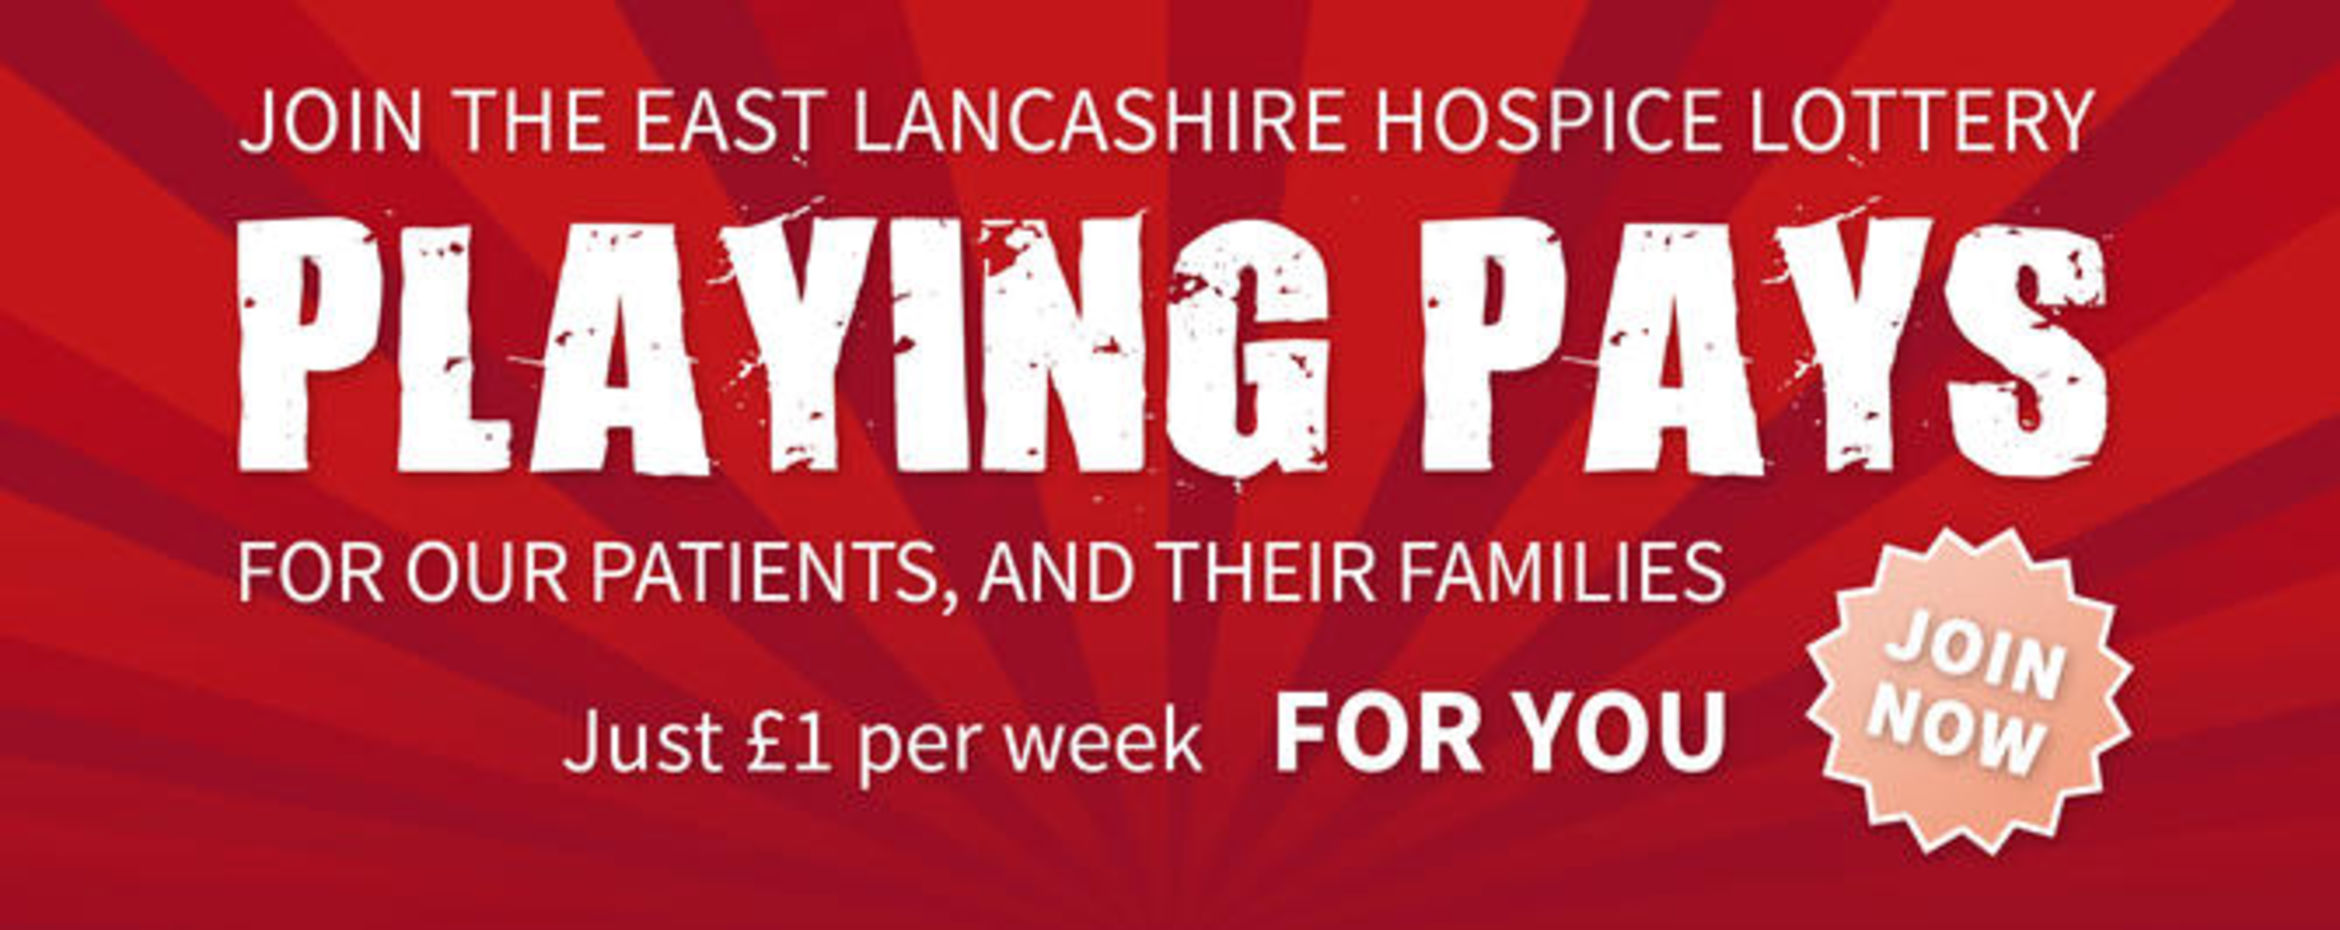 Joing the east Lancashire Hospice Lottery. PLAYING PAYS. For our patients, and their families. Just £1 per week FOR YOU. JOIN NOW